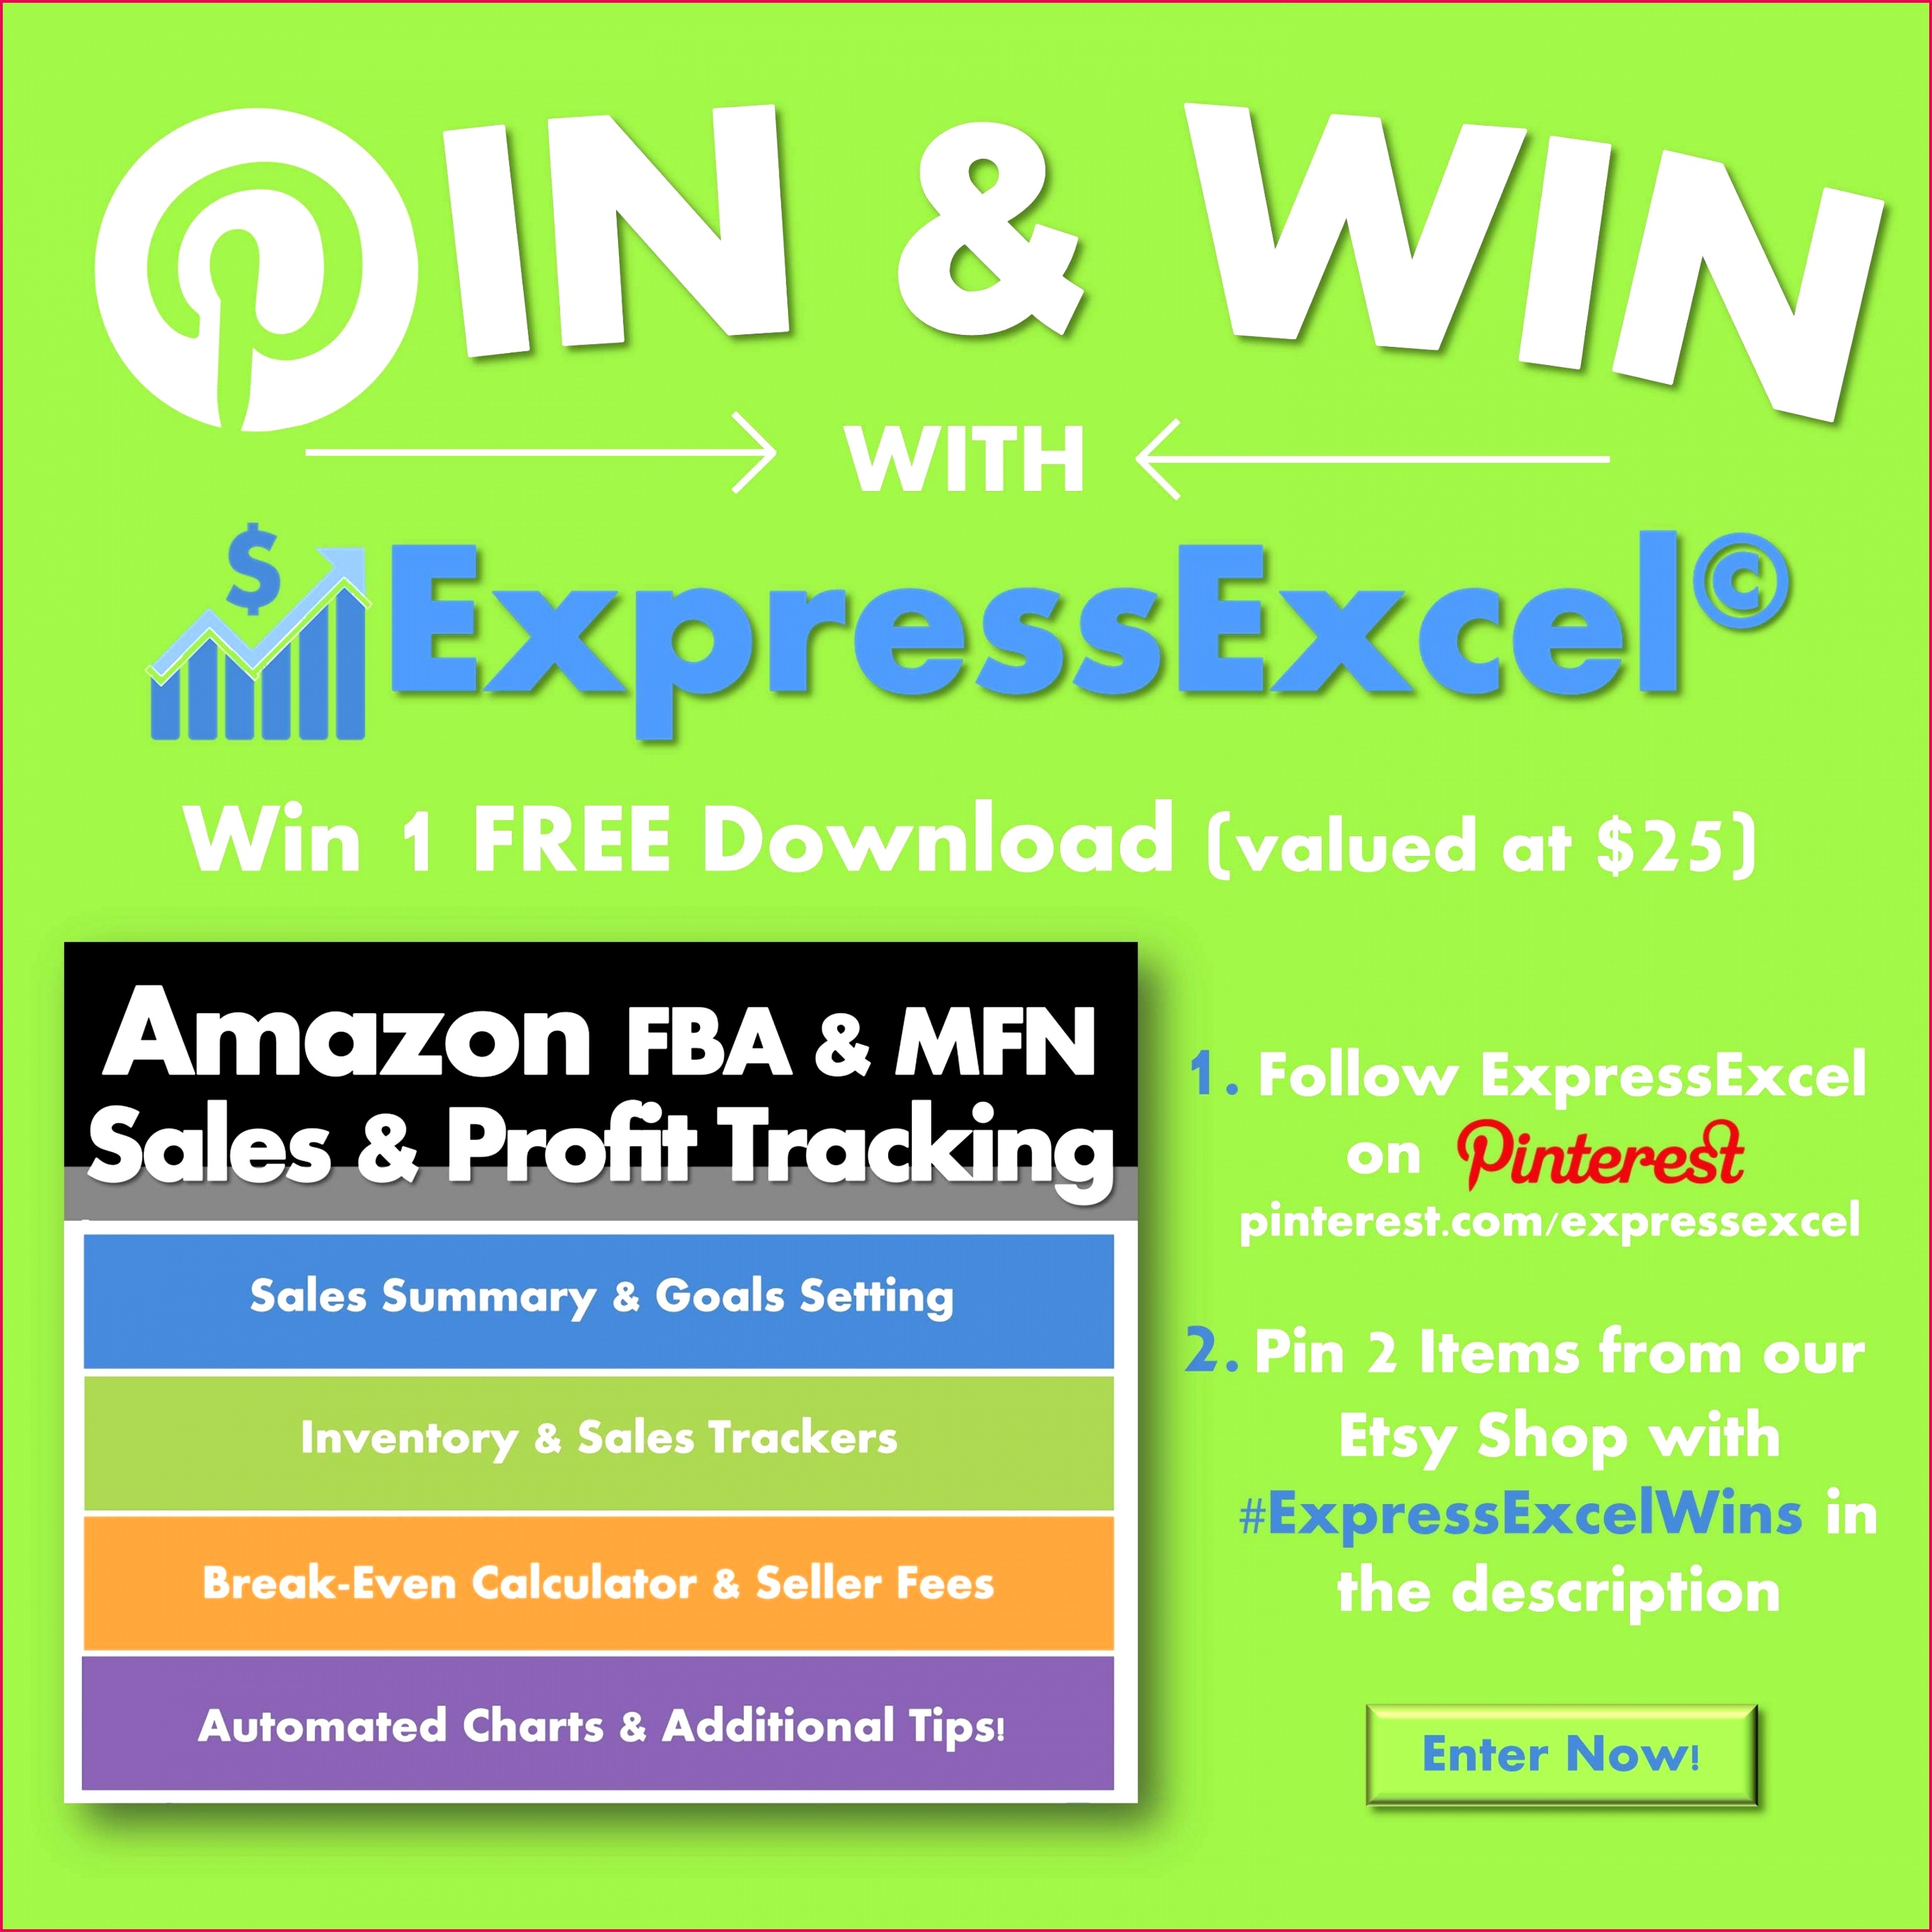 PRIZE The winner will receive 1 Free Download of one of ExpressExcel s Business Management Excel